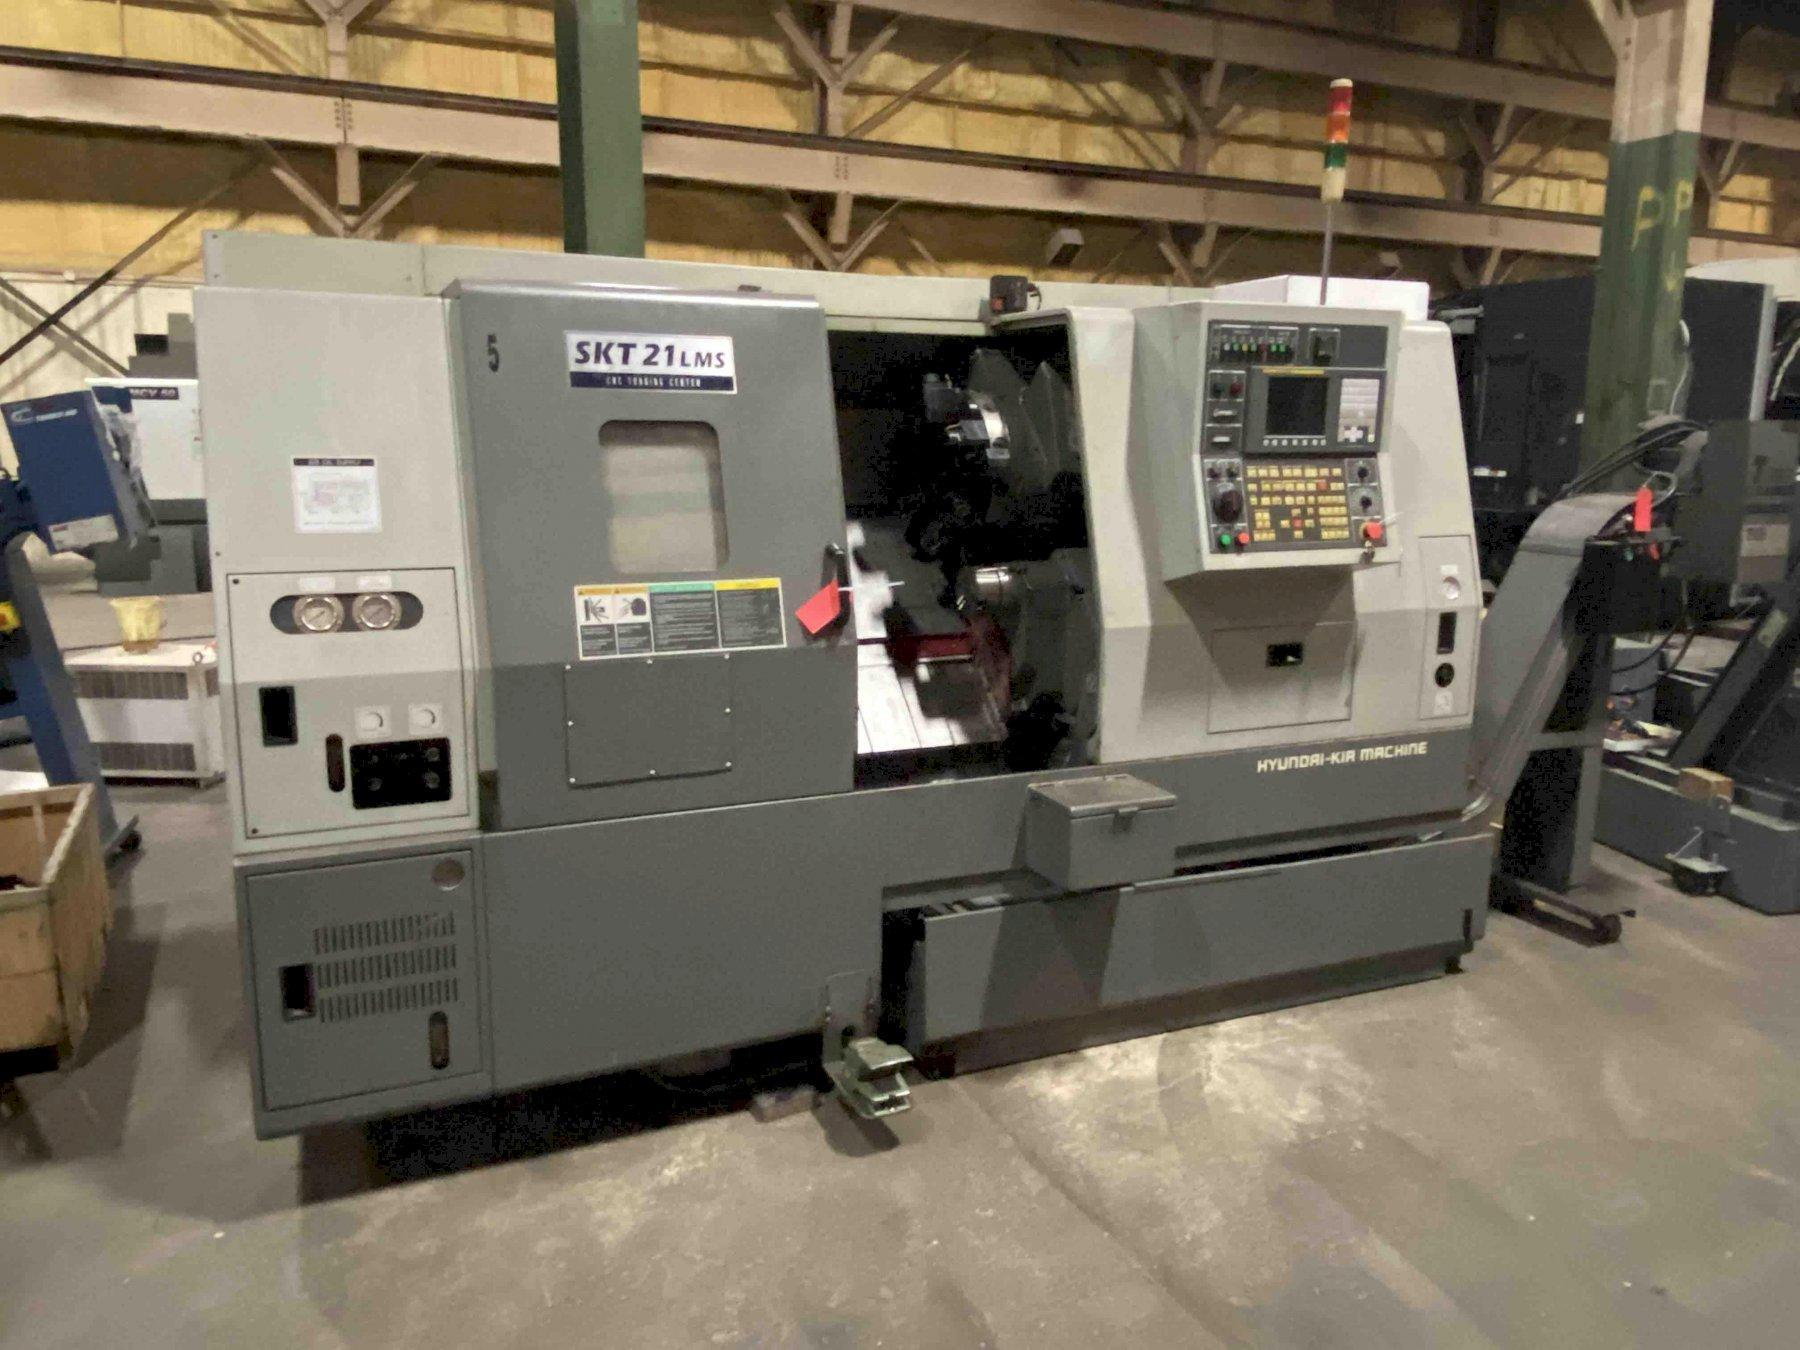 "Hyundai Kia SKT21LMS CNC Lathe, Fanuc 0iTC, 8"" Chuck, 5.3"" Sub Chuck, 21.6"" Swing, 20.8"" Centers, C-Axis, Live Milling, 2.6"" Bar Cap, 12 Position Turret, Parts Catcher, Tool Eye, Chip Conv, Low Hours, 2006"